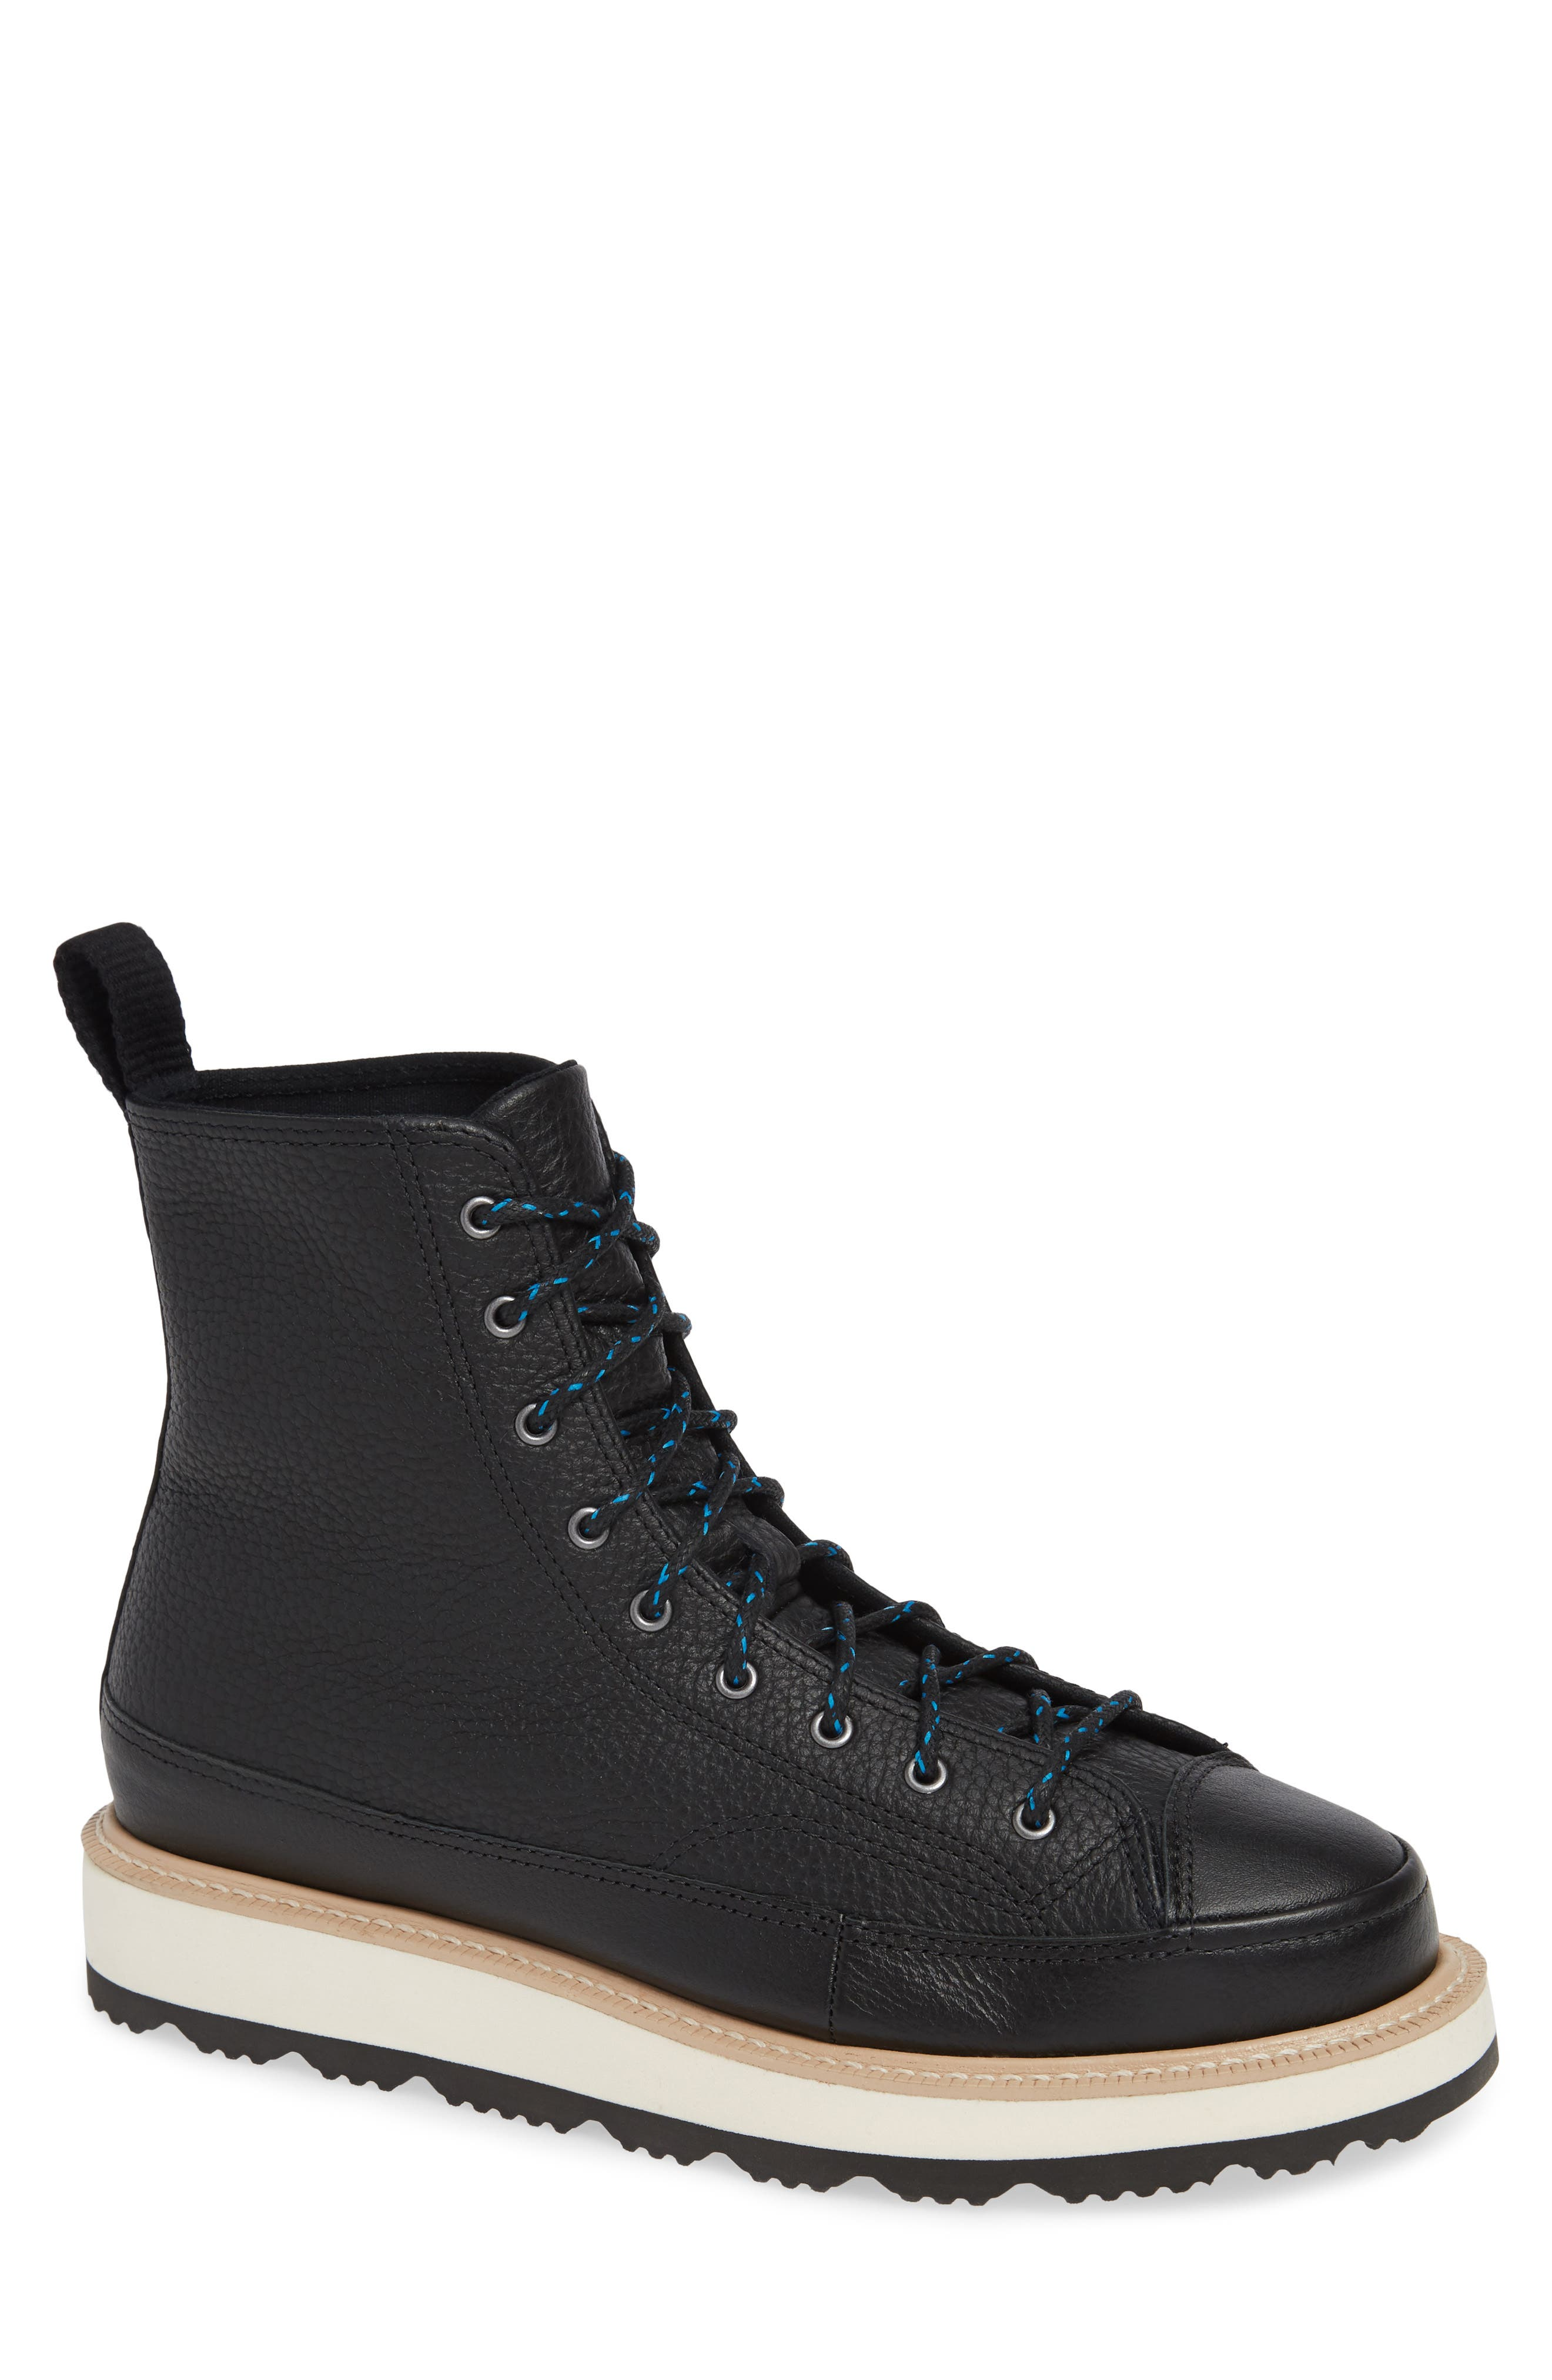 Chuck Taylor<sup>®</sup> Crafted Boot,                         Main,                         color, BLACK/ LIGHT FAWN/ BLACK